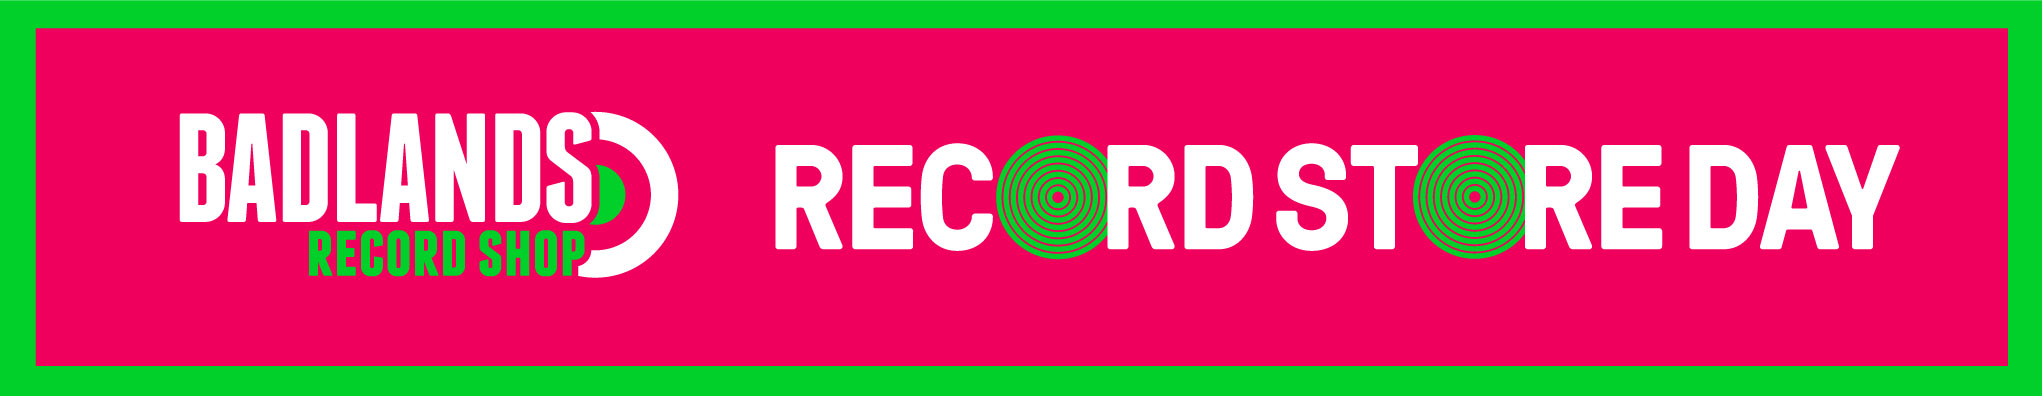 bc-record-store-day-2020-banner-tbc.jpg